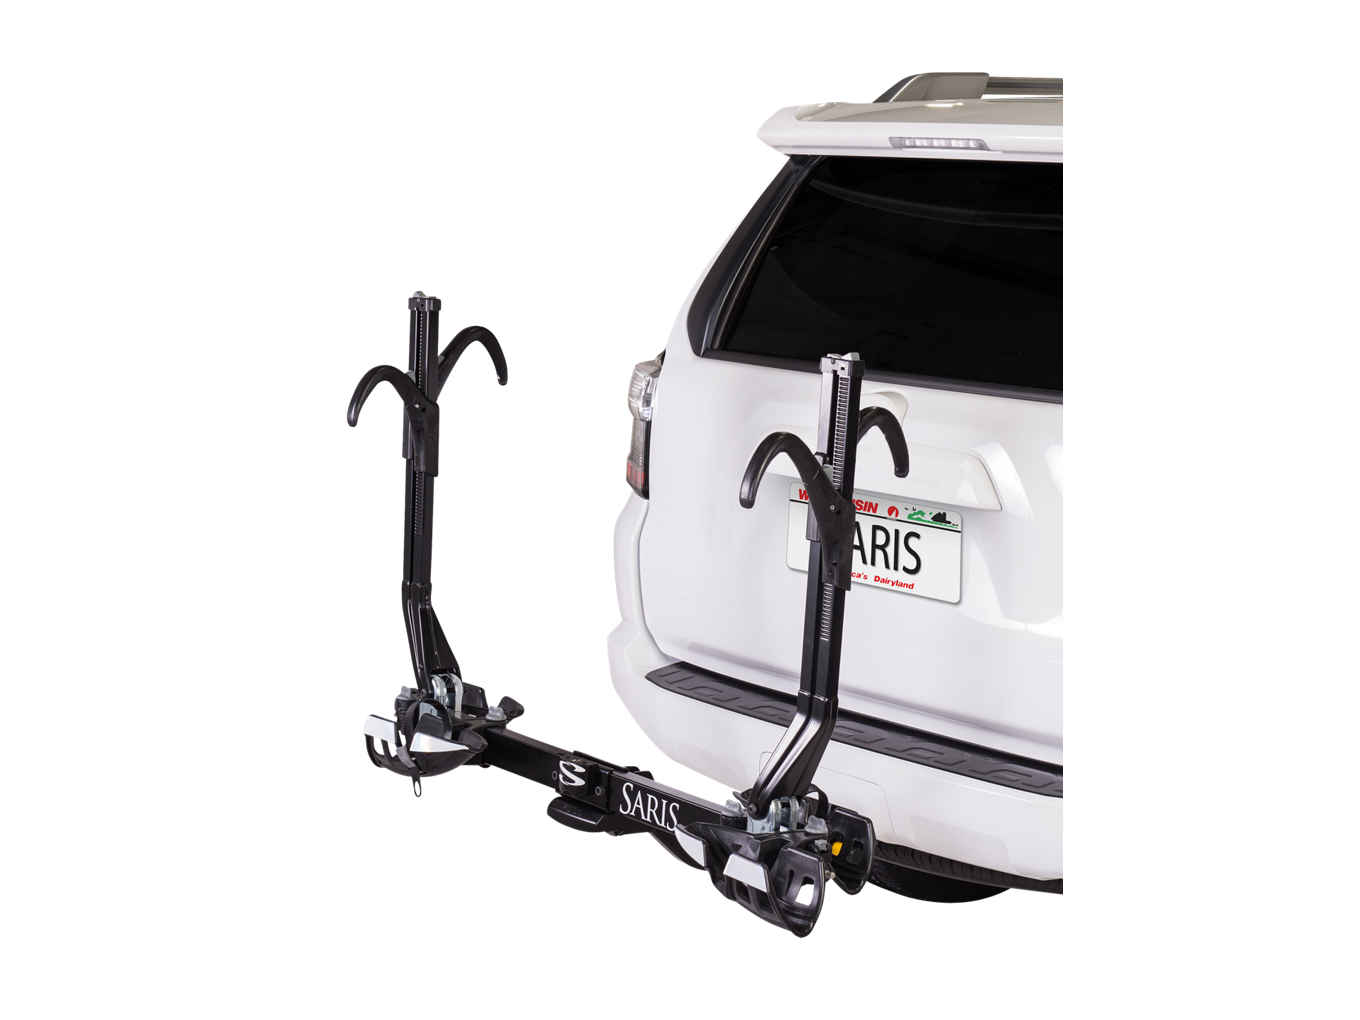 size archived design full racks bicycle glamorous bike of fork car on frame mount carriers mounts rack for ideas roof wheel hitch towel